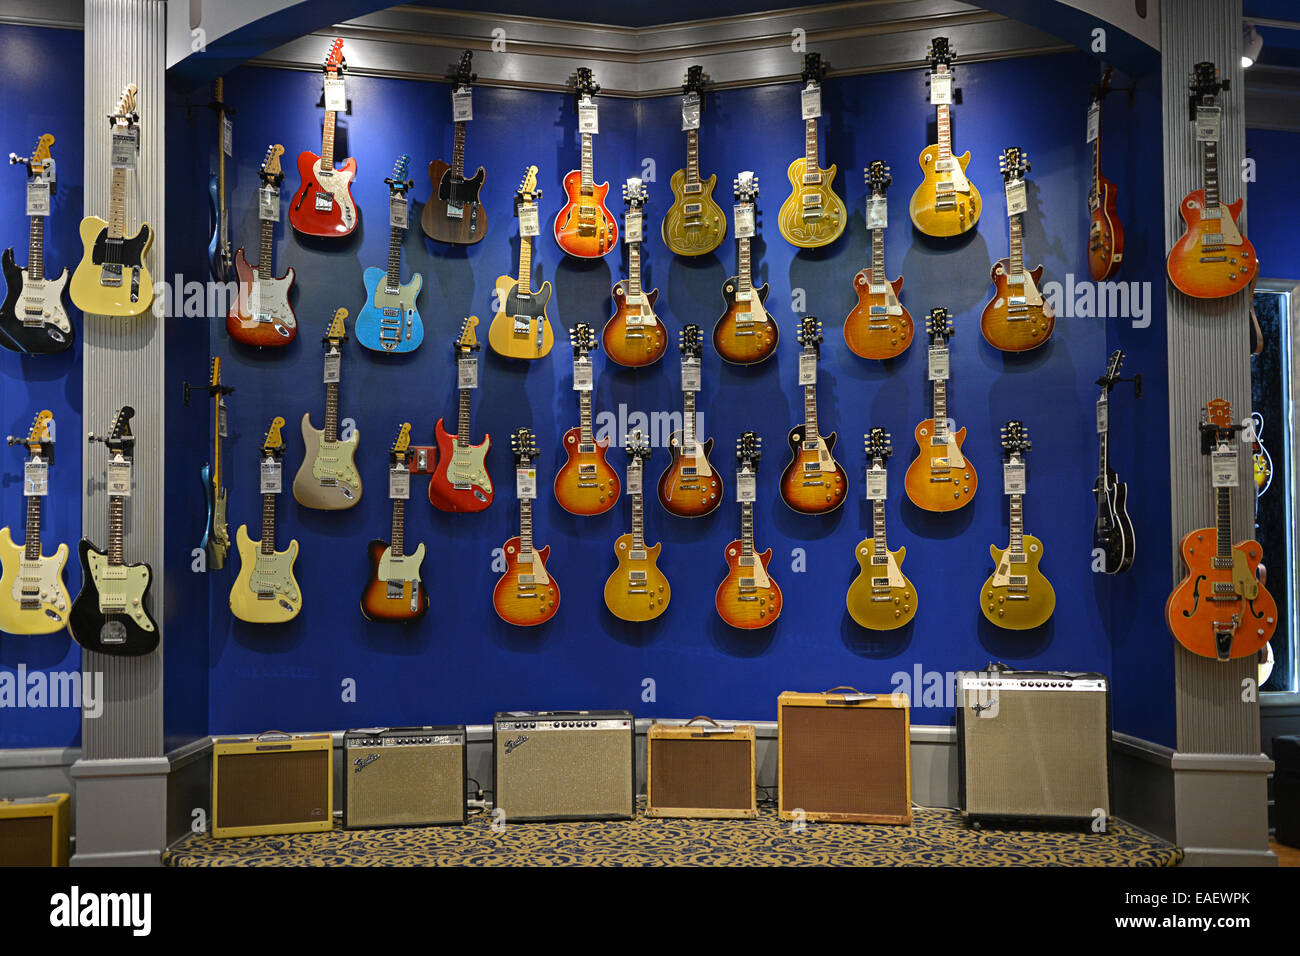 Vintage guitars and amplifiers for sale at the Guitar Center on West 14th Street in Manhattan, New York, City - Stock Image